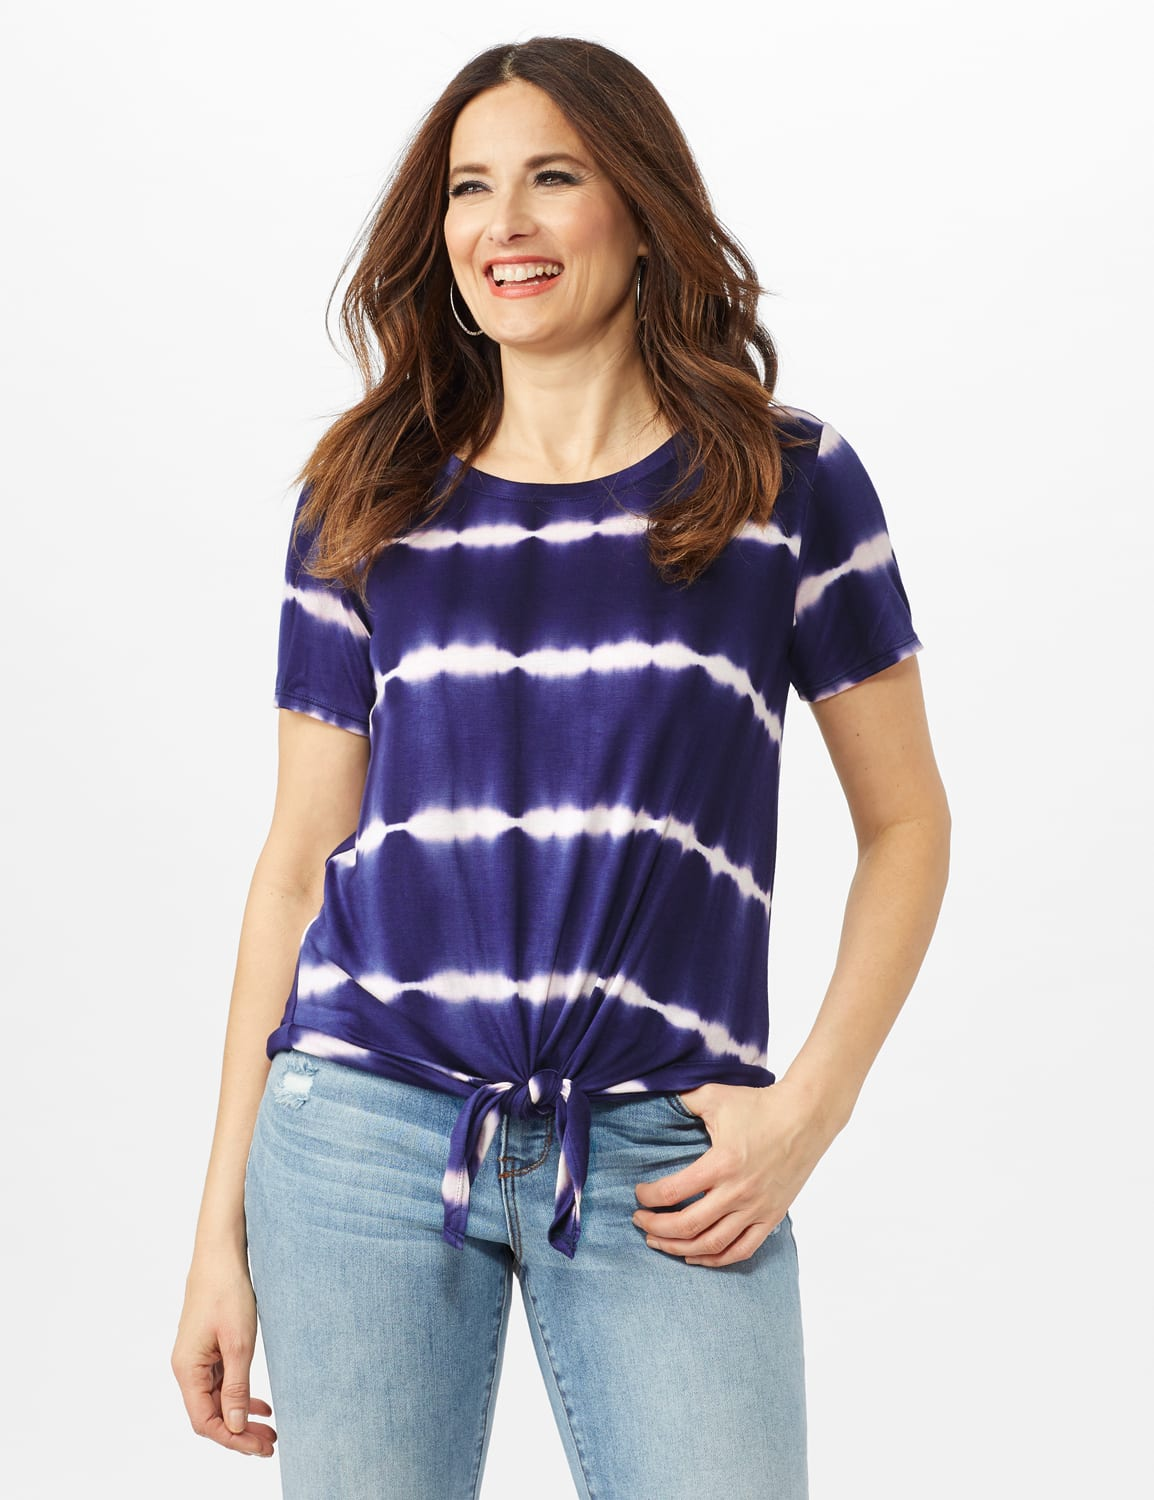 Stripe Tie Front Knit Top - Navy - Front